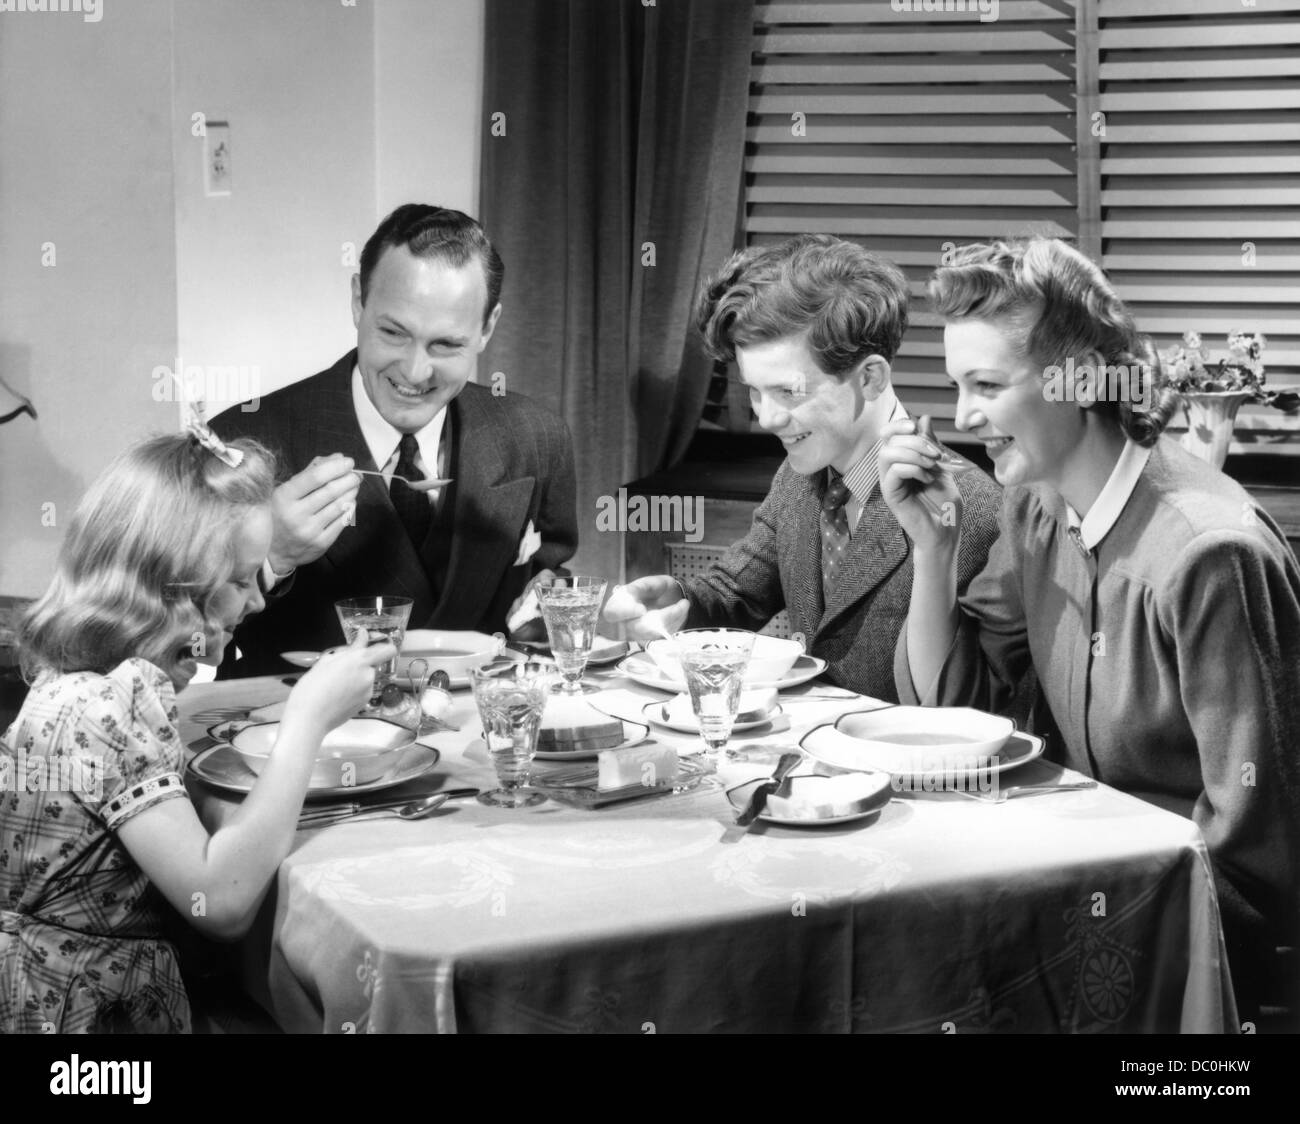 1930s 1940s HAPPY FAMILY EATING DINNER AT HOME - Stock Image